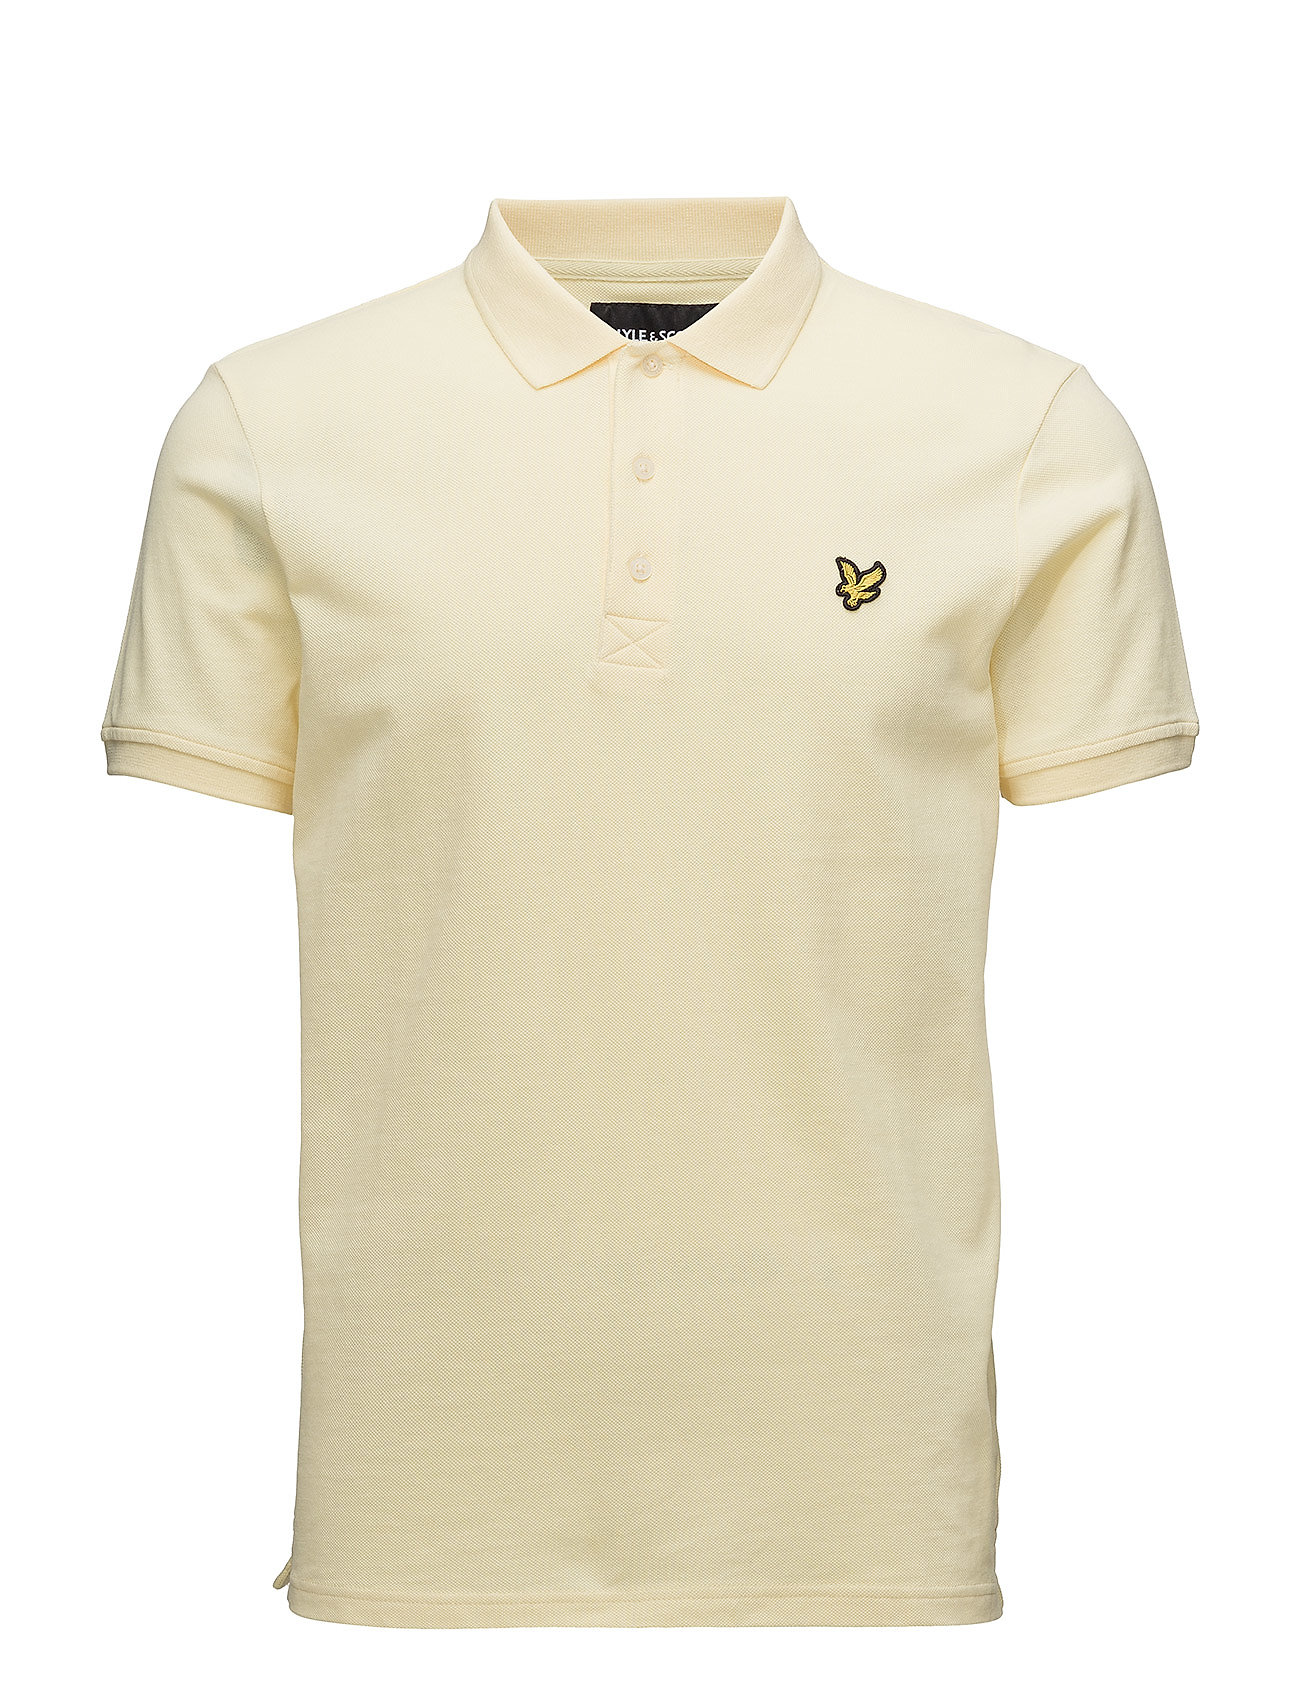 Lyle & Scott Polo Shirt - BUTTER CREAM